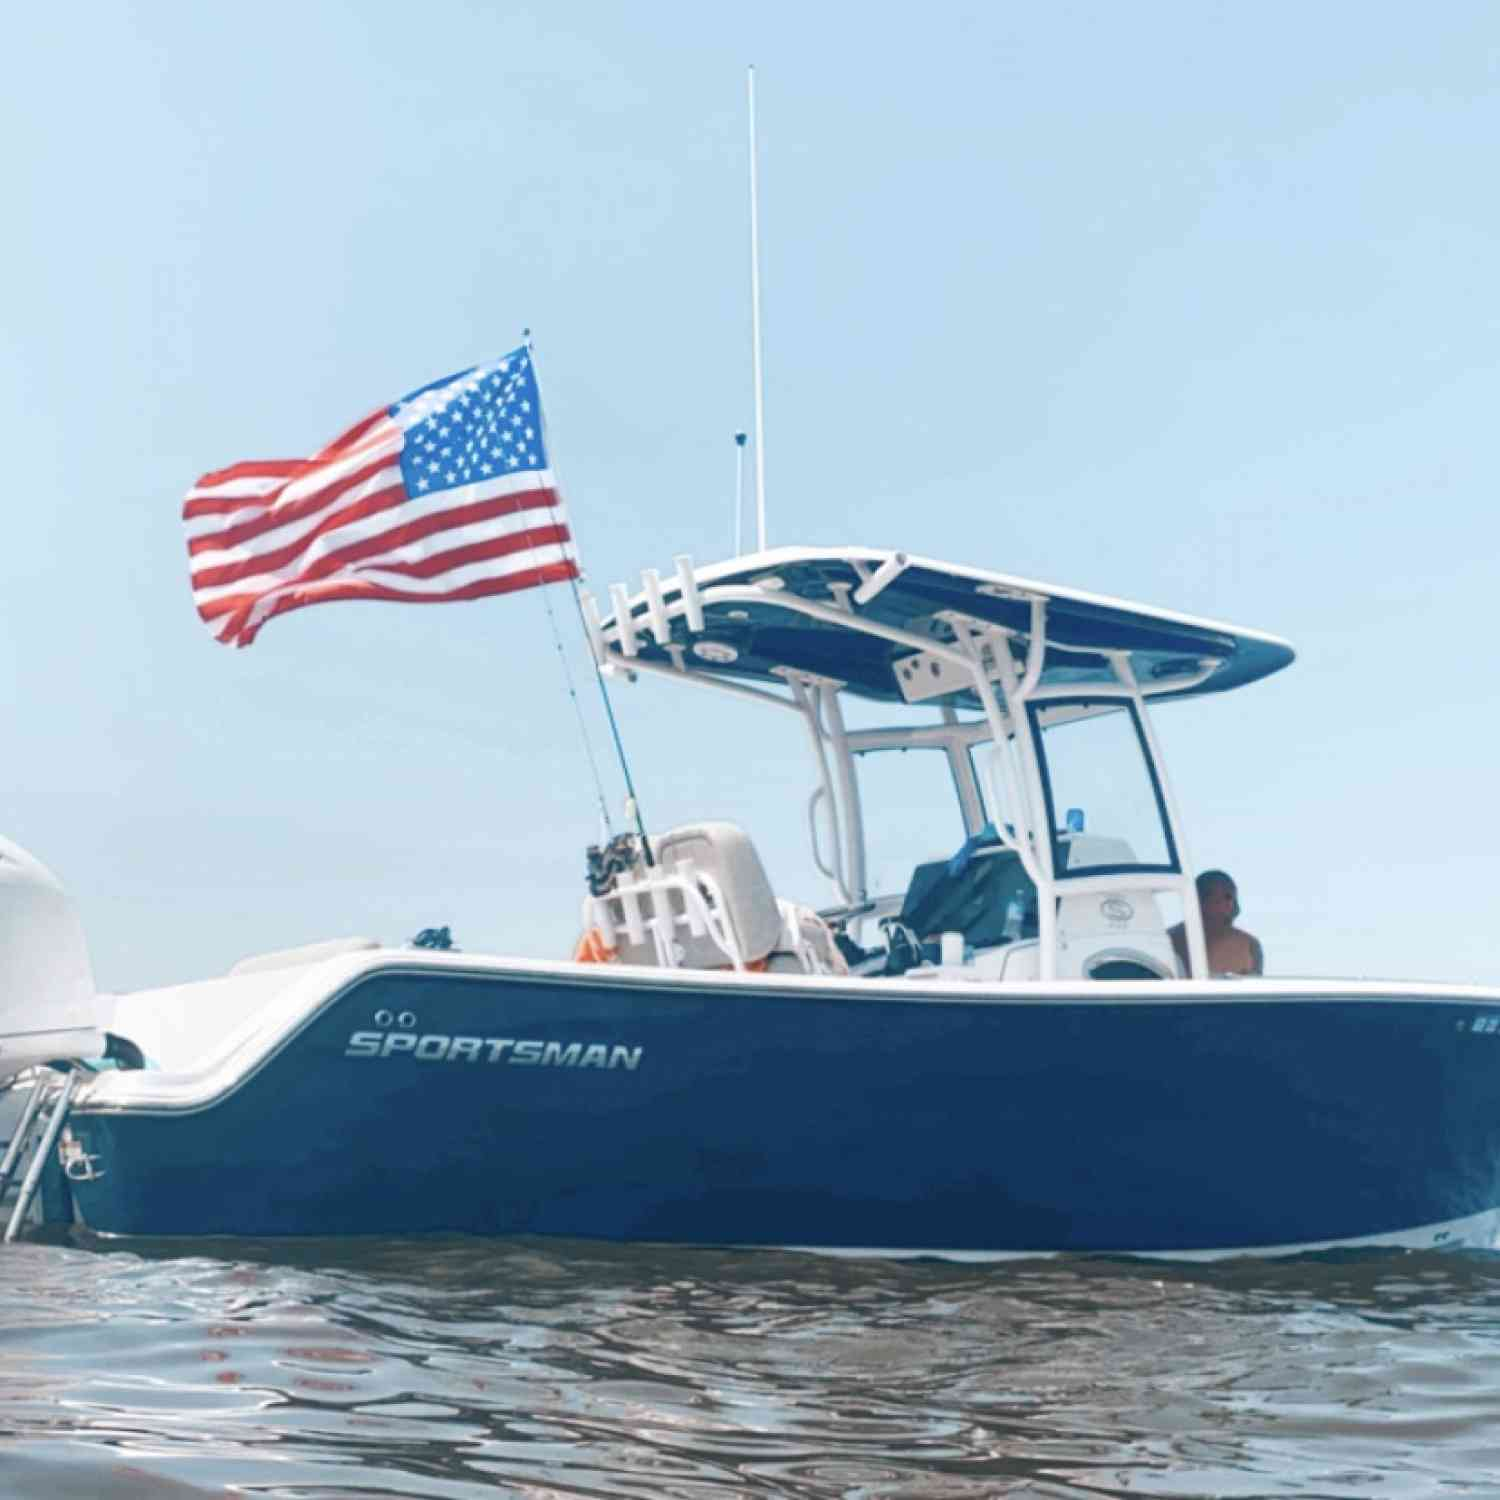 Title: America - On board their Sportsman Open 252 Center Console - Location: Queenstown Md. Participating in the Photo Contest #SportsmanAugust2020